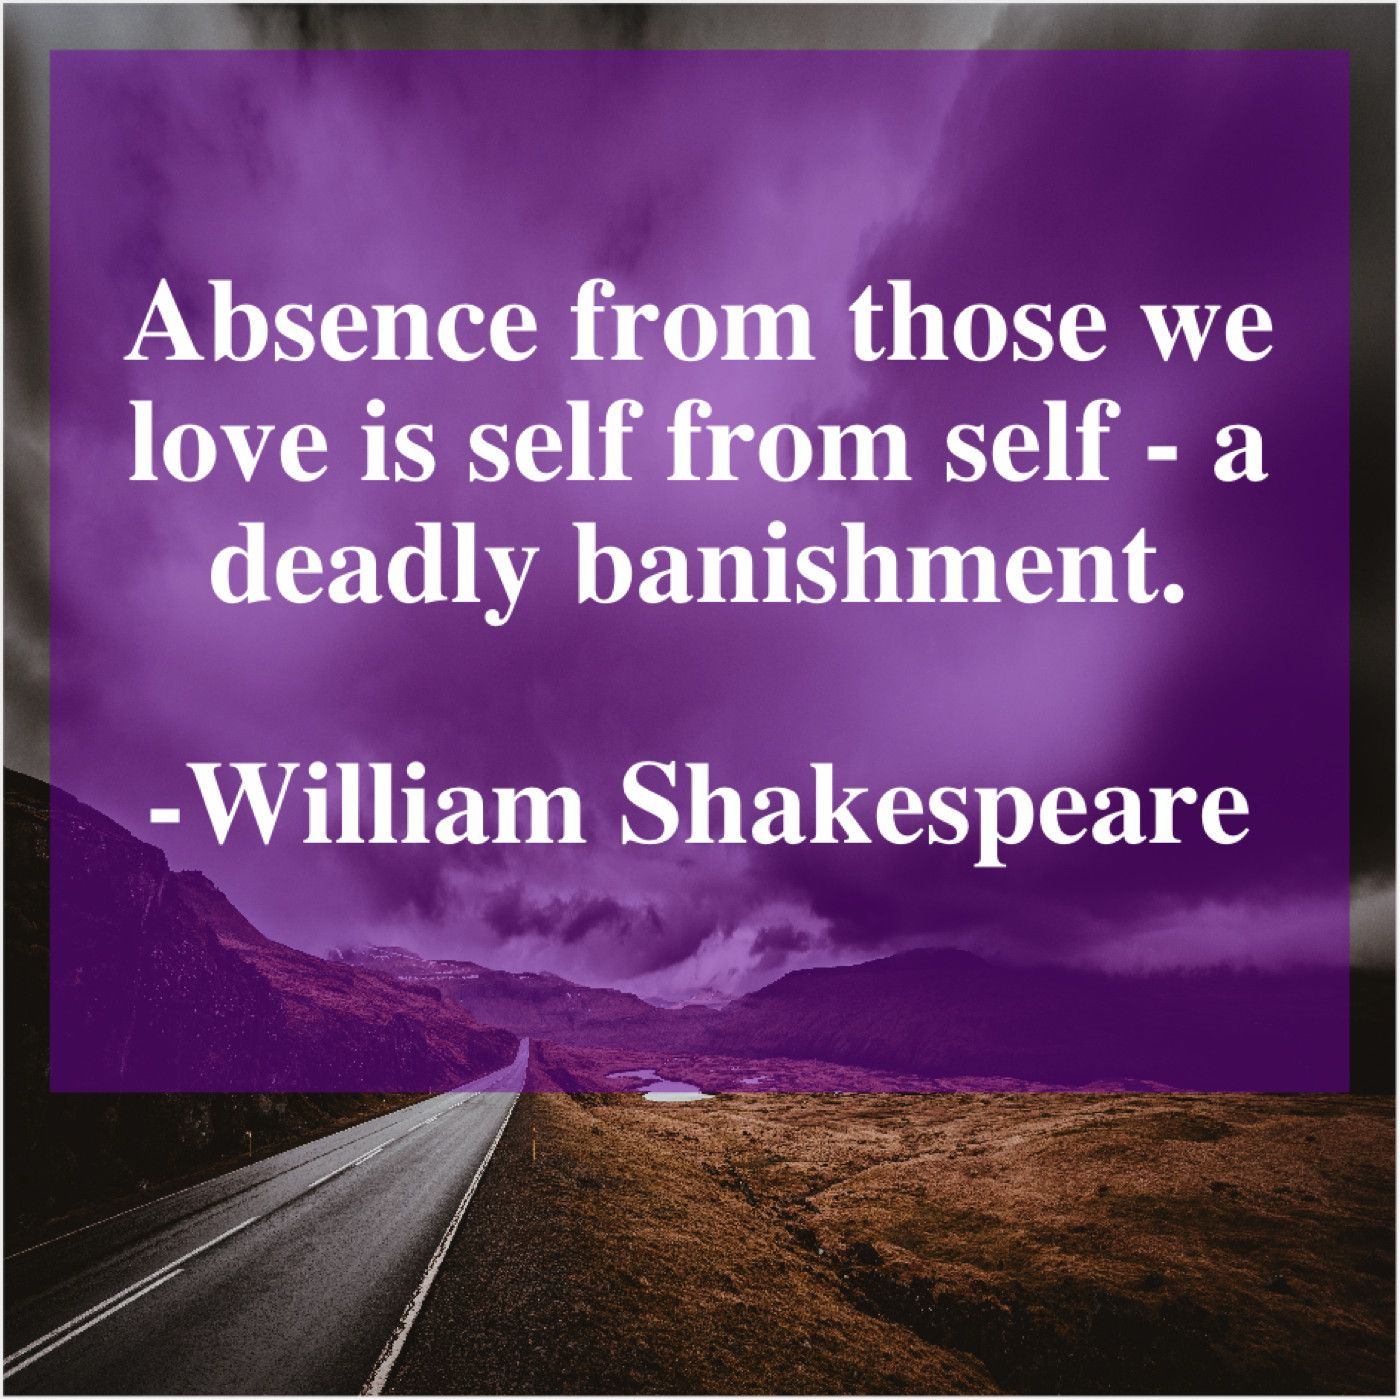 William Shakespeare Absence From Those We Love William Shakespeare Shakespeare Our Love